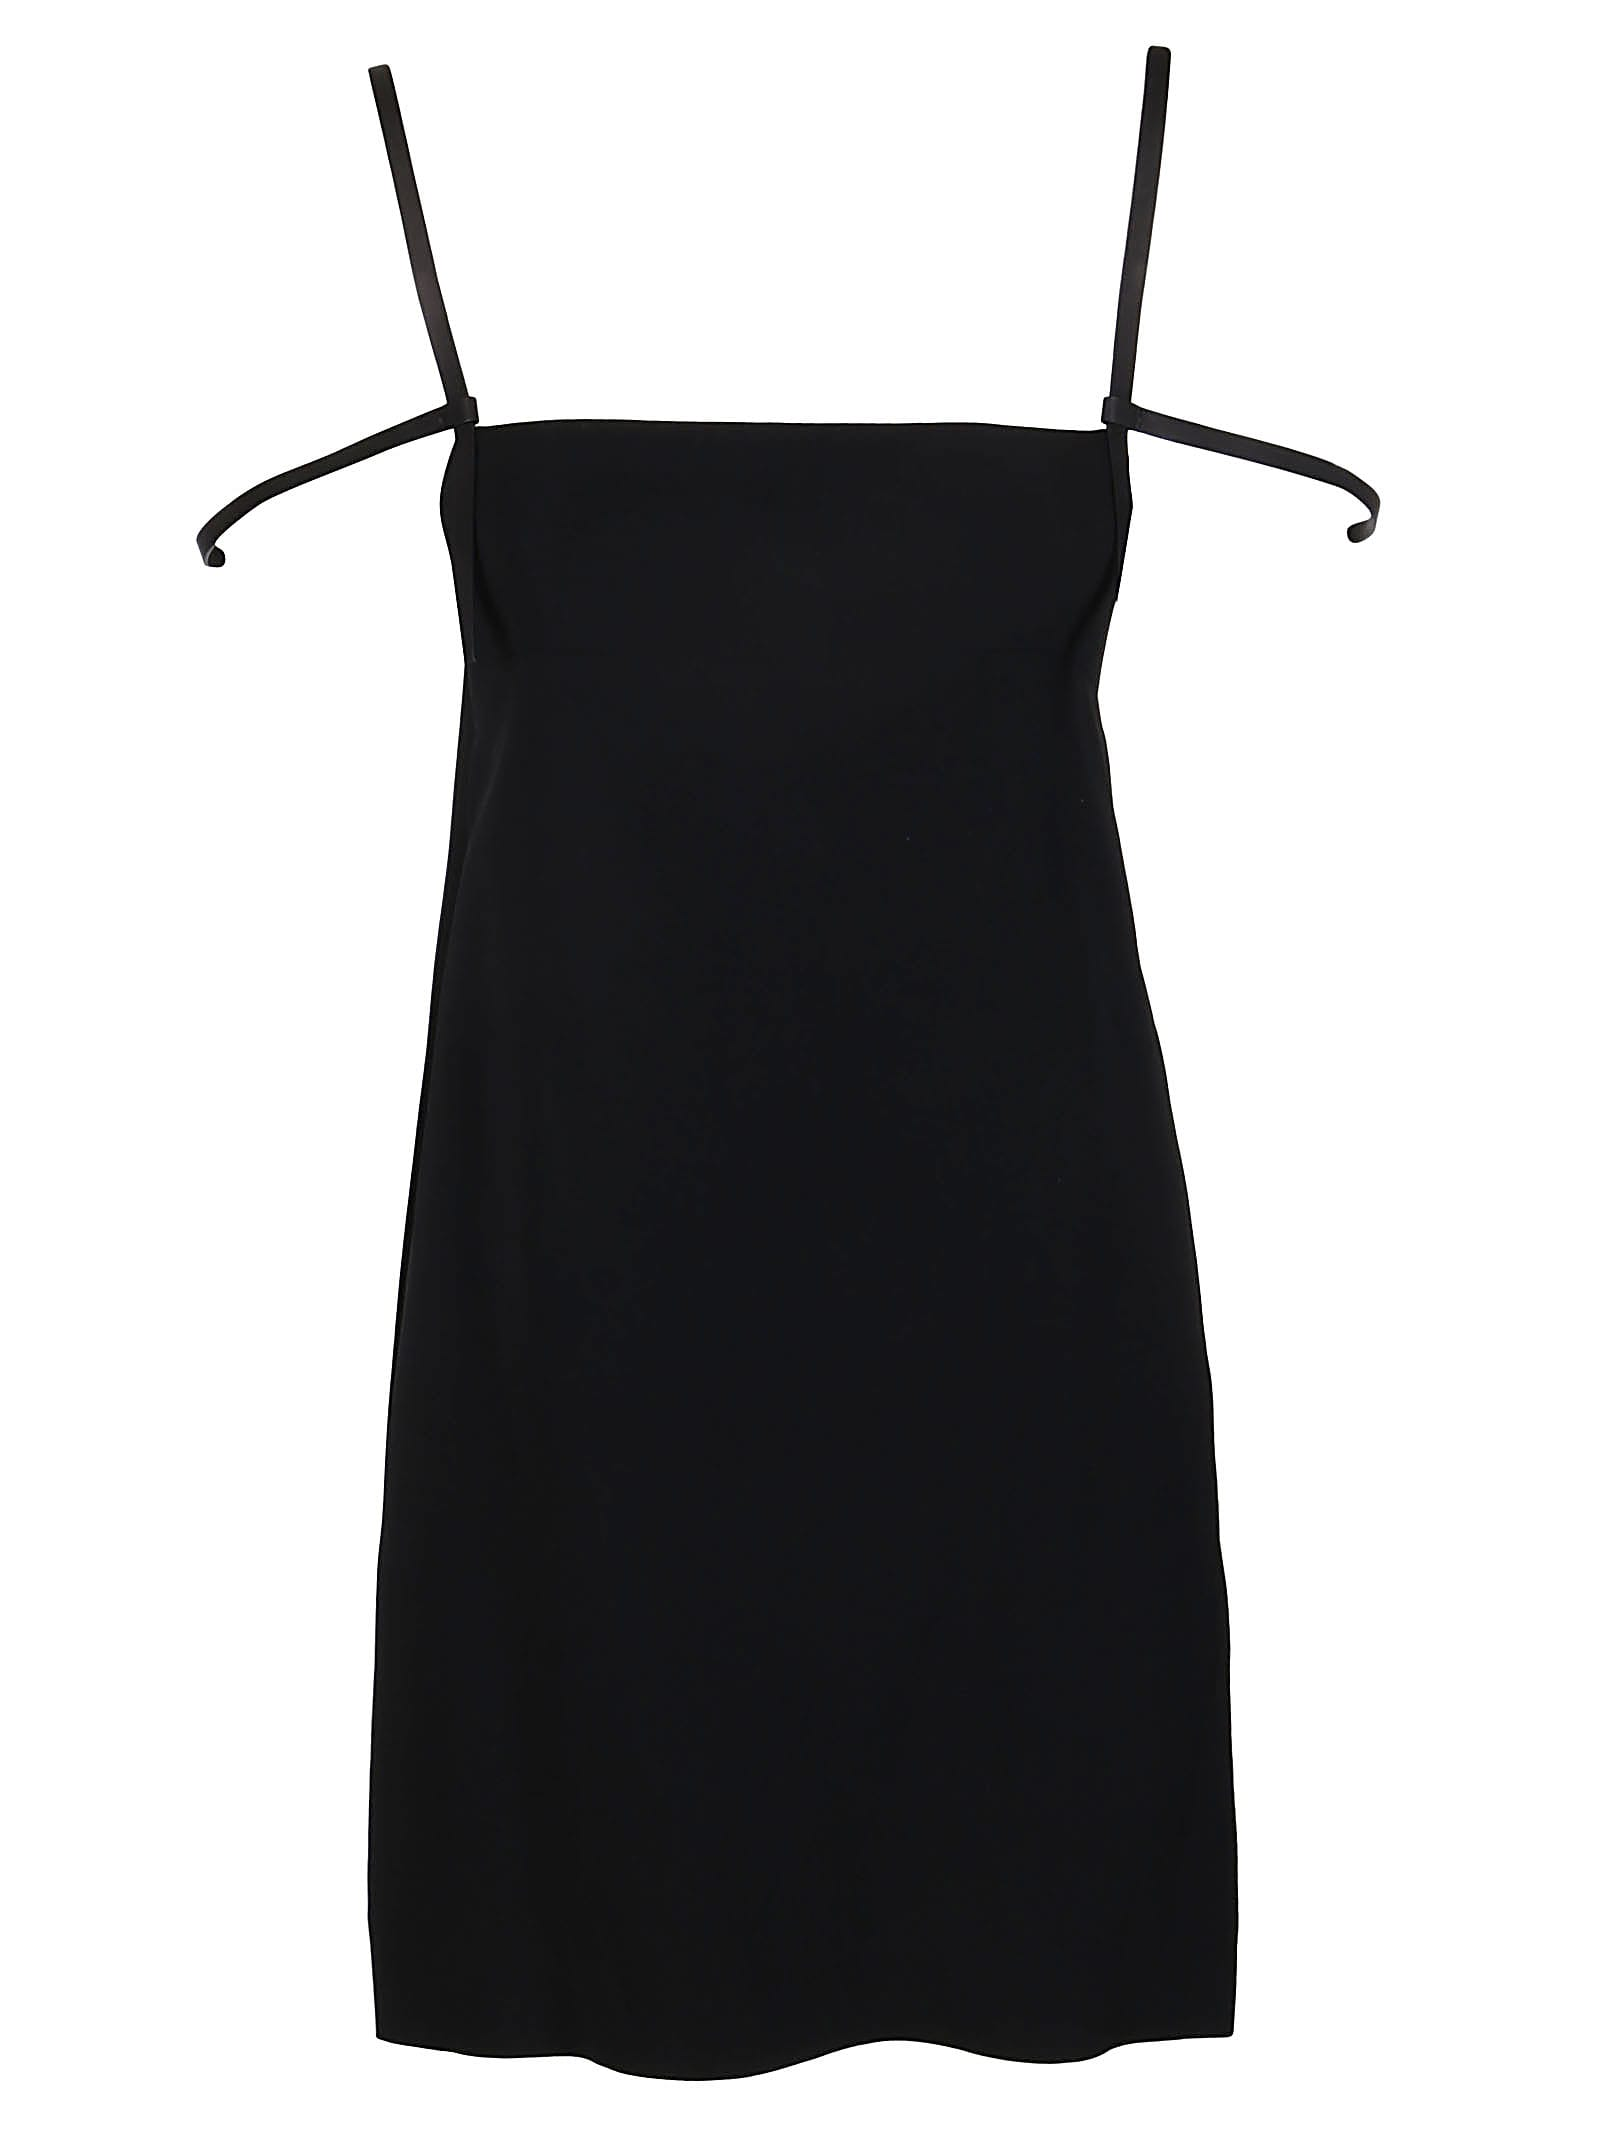 Buy Black Viscose Dress Dsquared2 online, shop Dsquared2 with free shipping